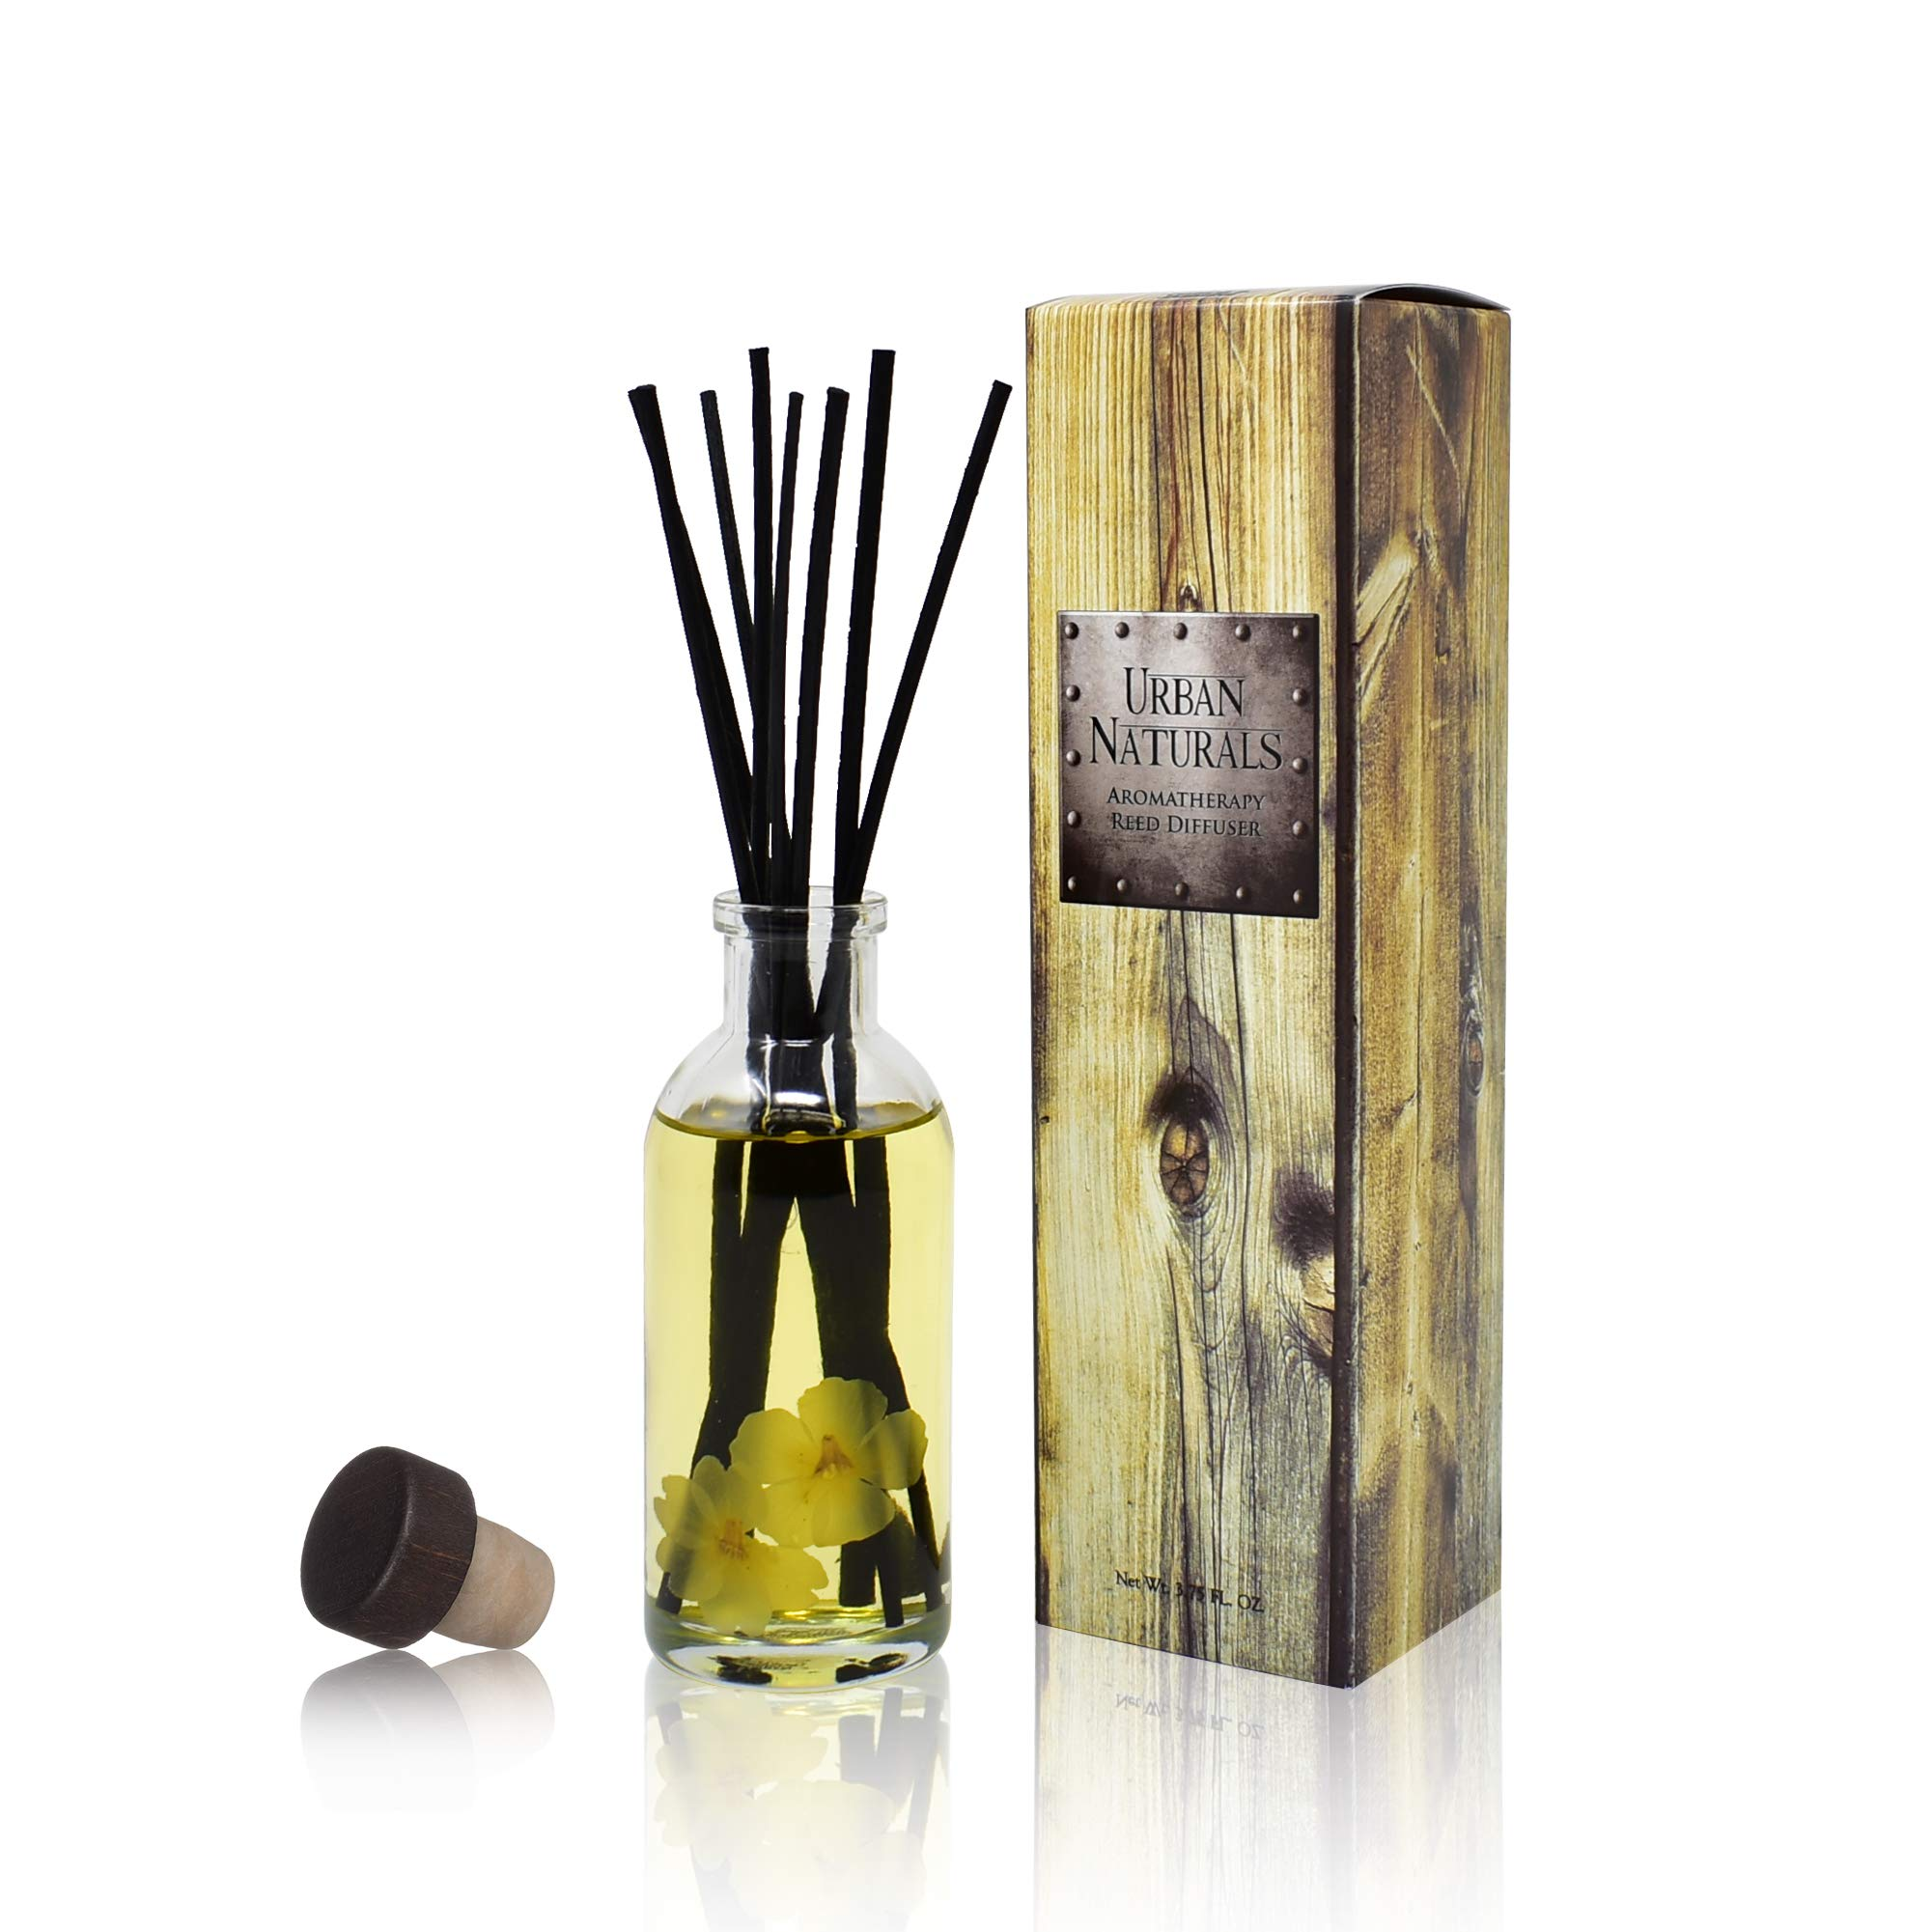 Urban Naturals Citrus & Jasmine Reed Diffuser Scented Sticks Set | (Energy + Clarity) Mind & Body Aromatherapy Collection | Essential Oil Botanical Room Scent | Liquid Potpourri Alternative by Urban Naturals (Image #1)